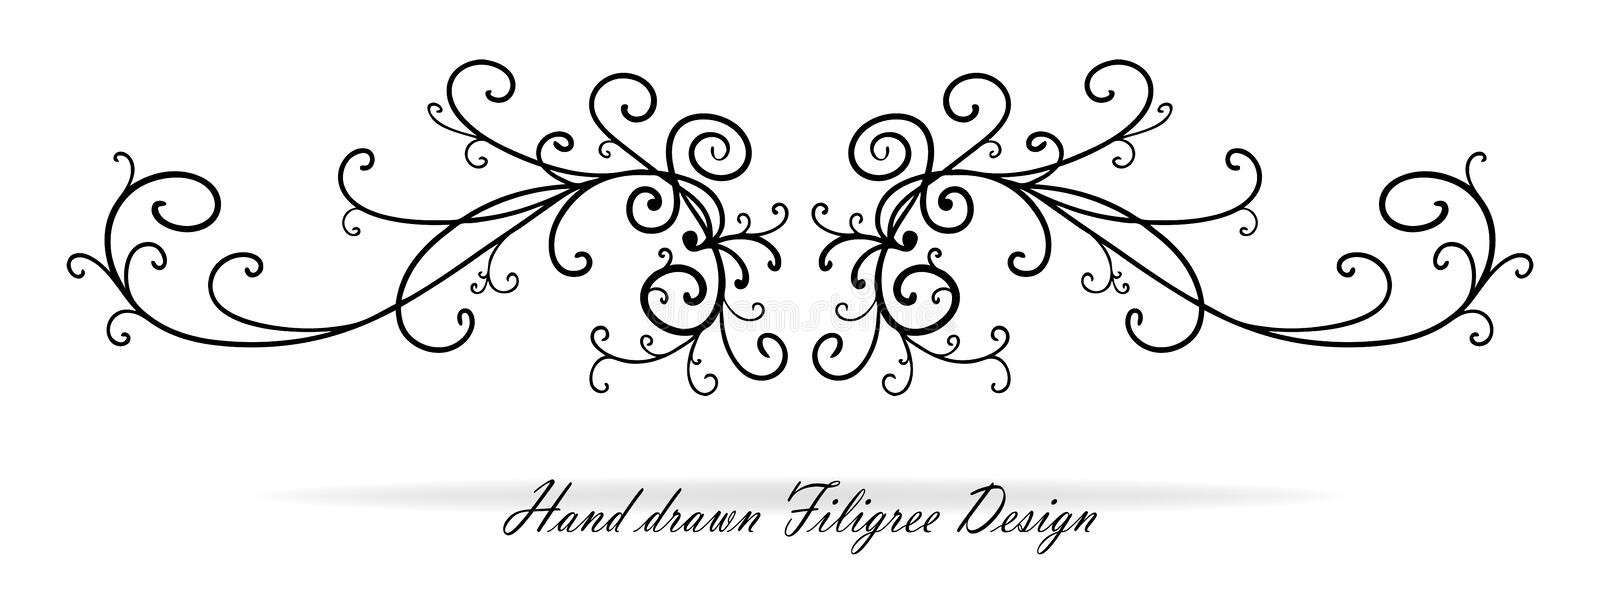 Beautiful fancy scroll design, paragraph or text underline, wedding design element. Paragraph or text divider or other fancy scroll work flourishes, reflected stock illustration